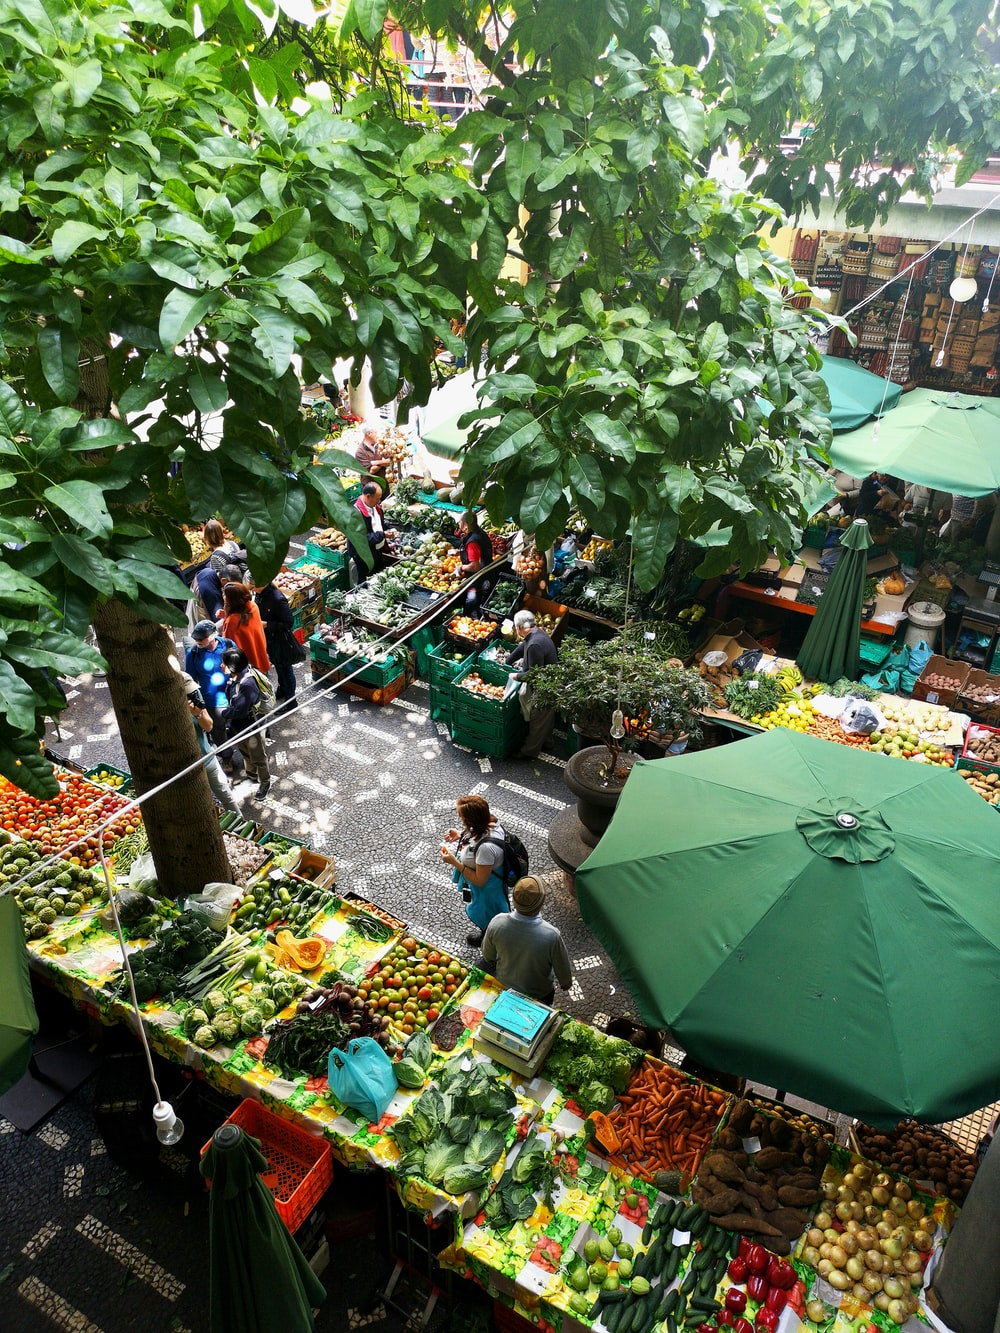 people standing near patio umbrella surrounded with fruits and vegetable stalls